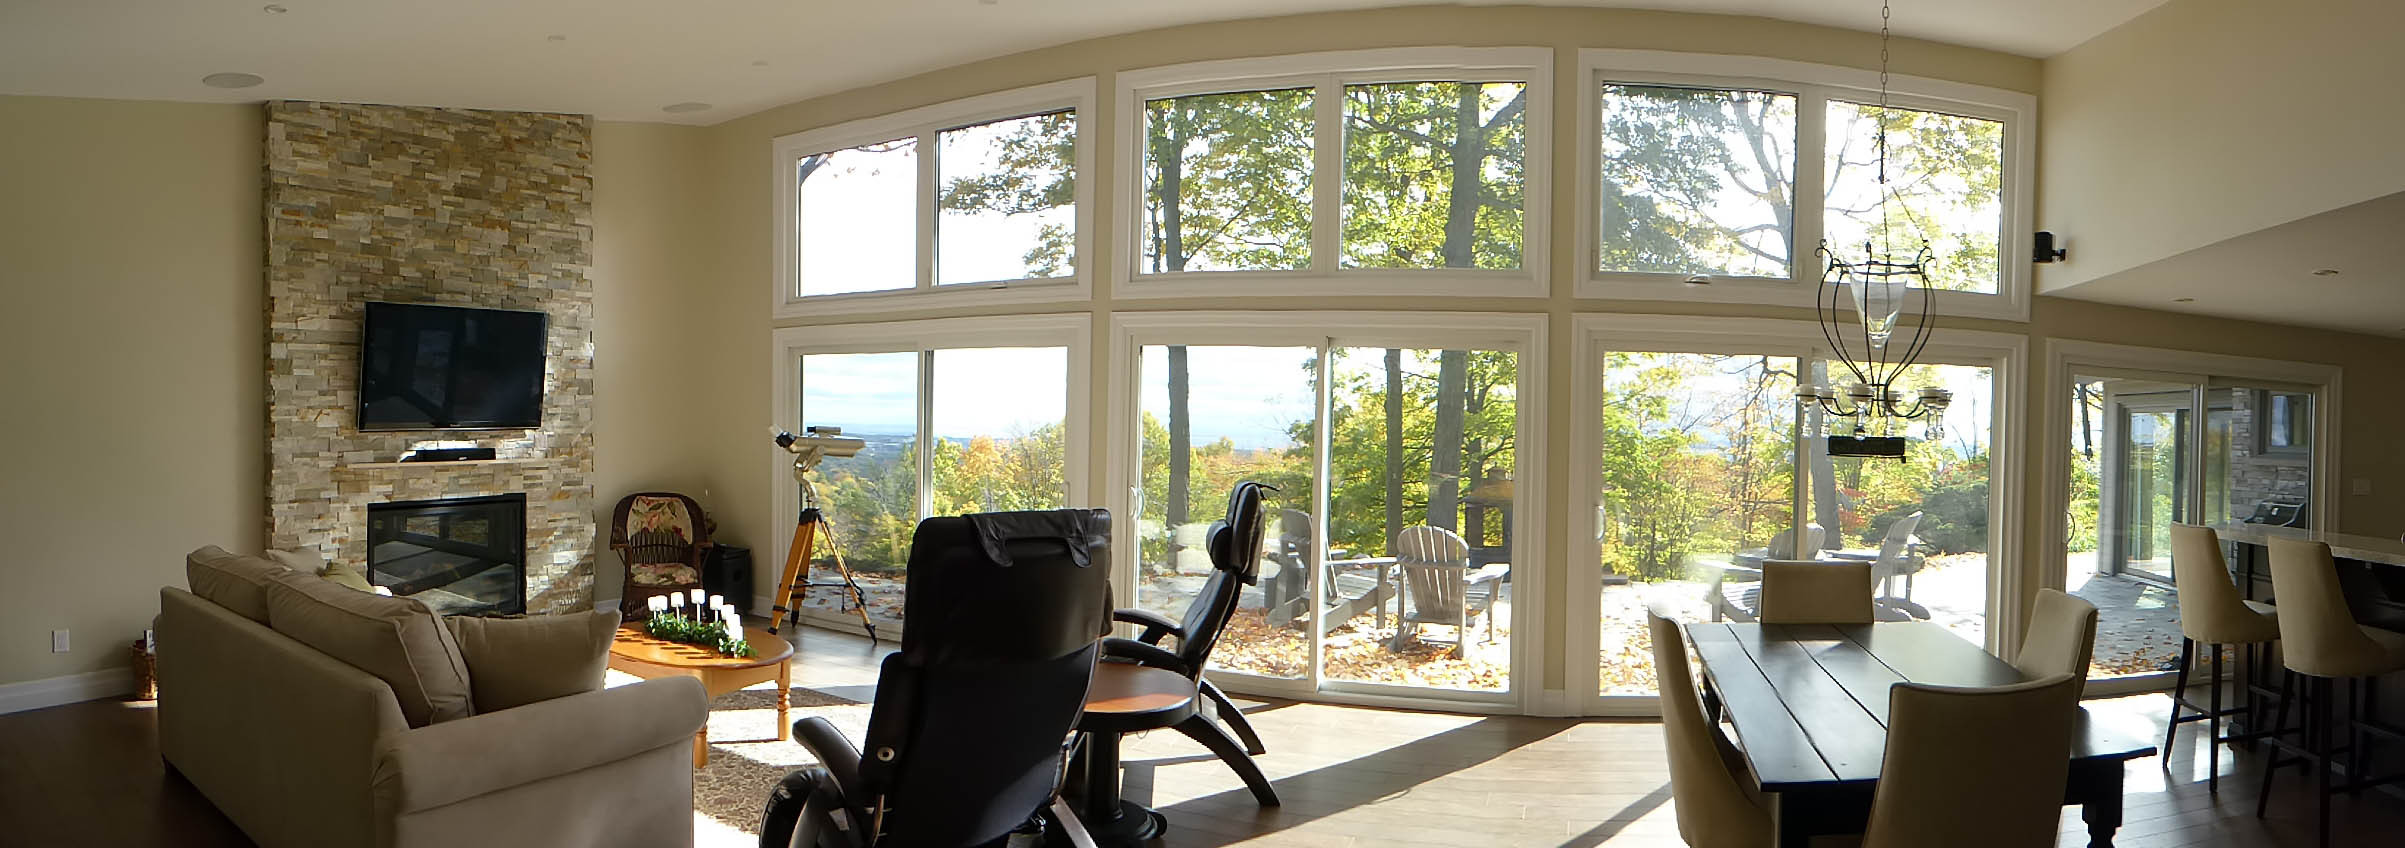 3rd Conc. Burlington: Open room with a view